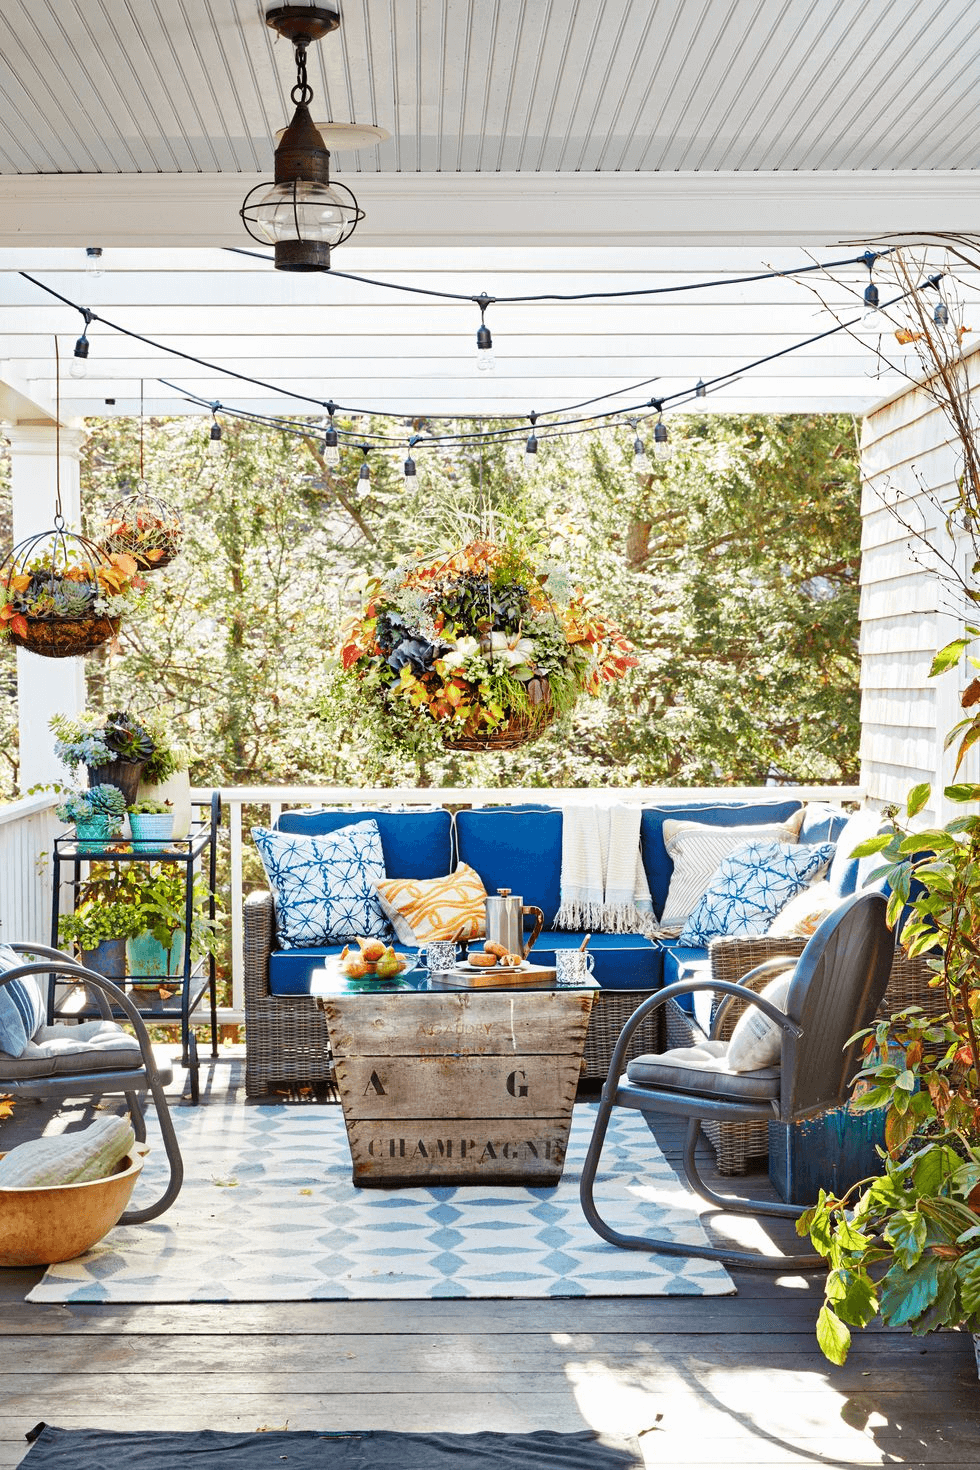 HANGING FLOWERS PORCH PARTY DECOR IDEAS